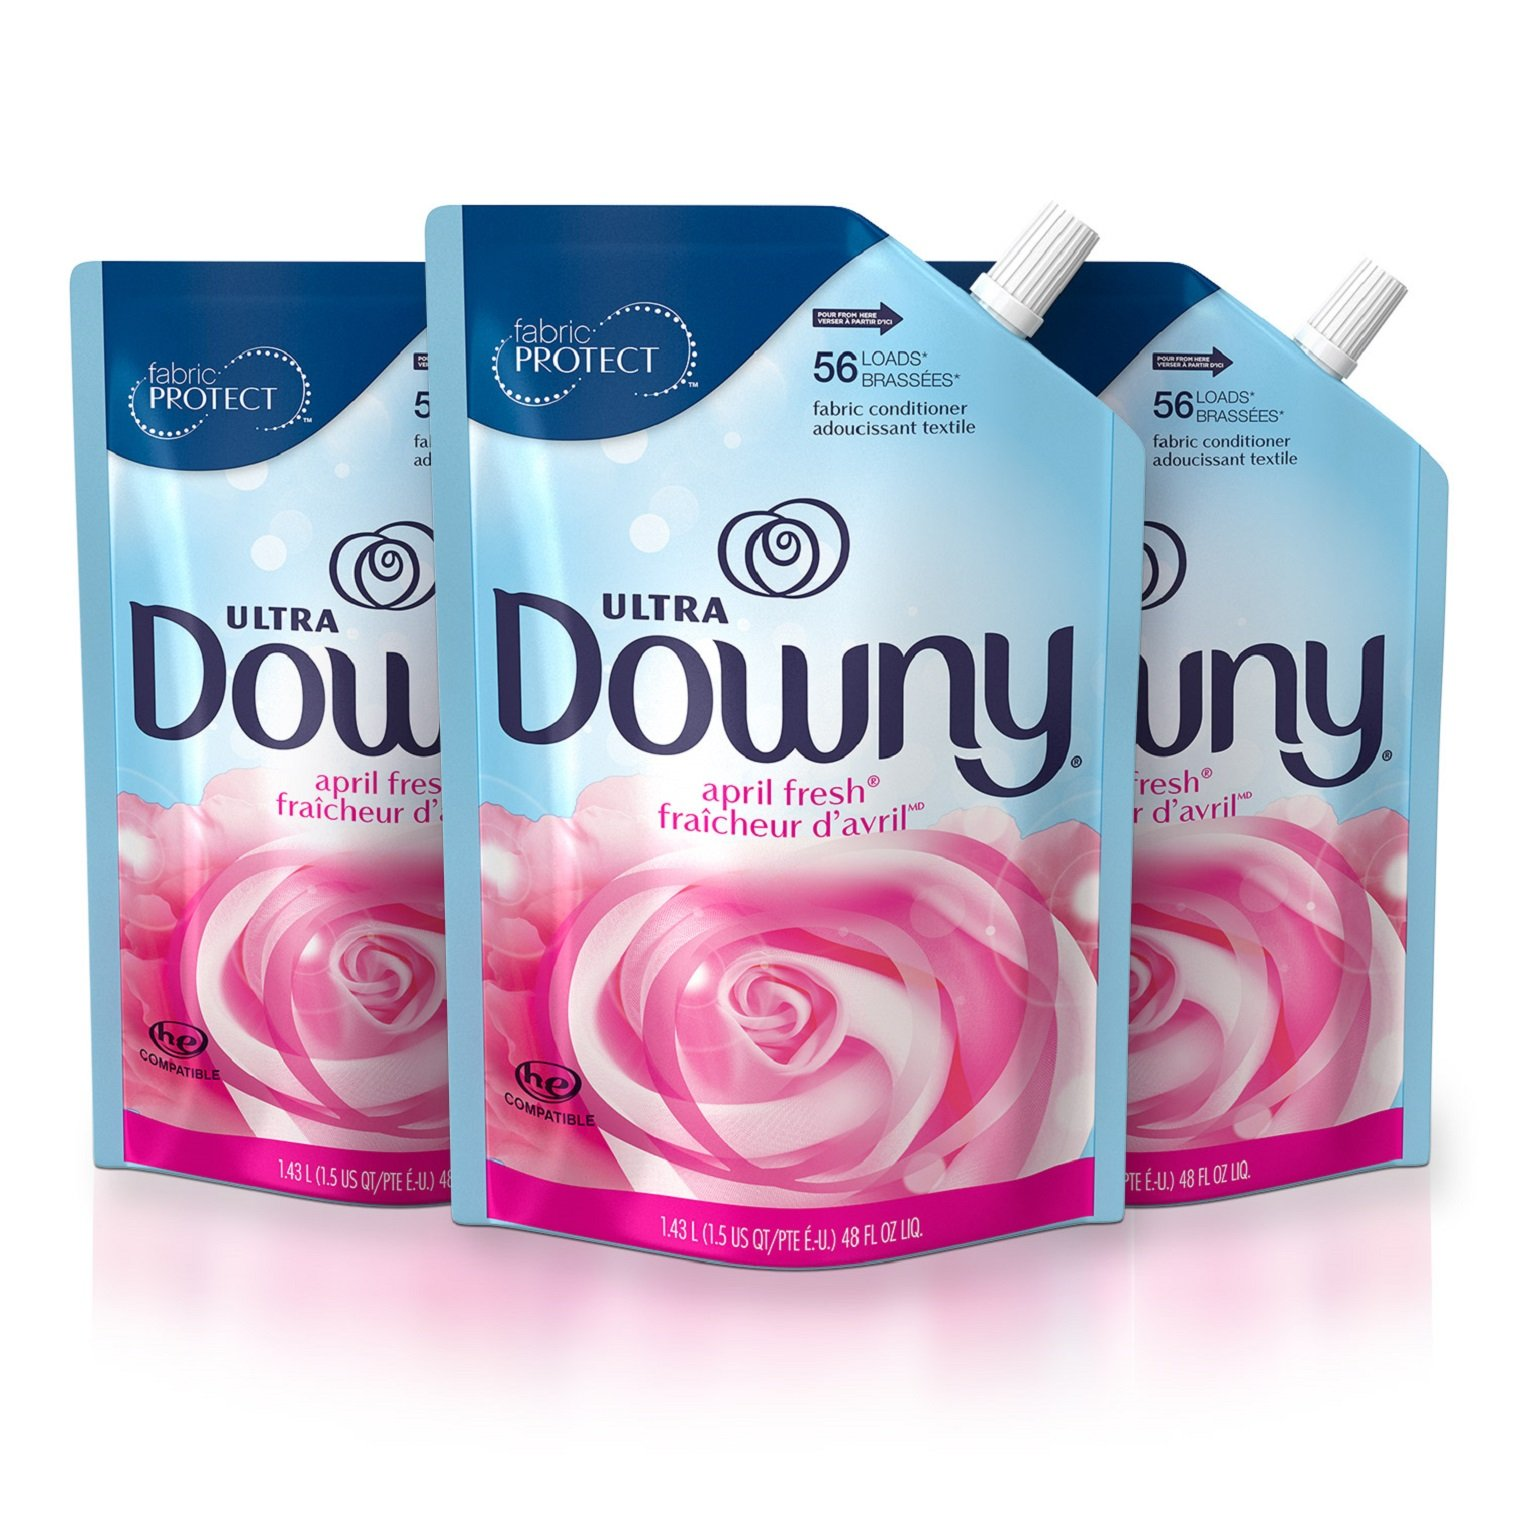 Downy Ultra April Fresh Liquid Fabric Conditioner Smart Pouch, Fabric Softener - 48 Oz. Pouches, 3 Pack by Downy